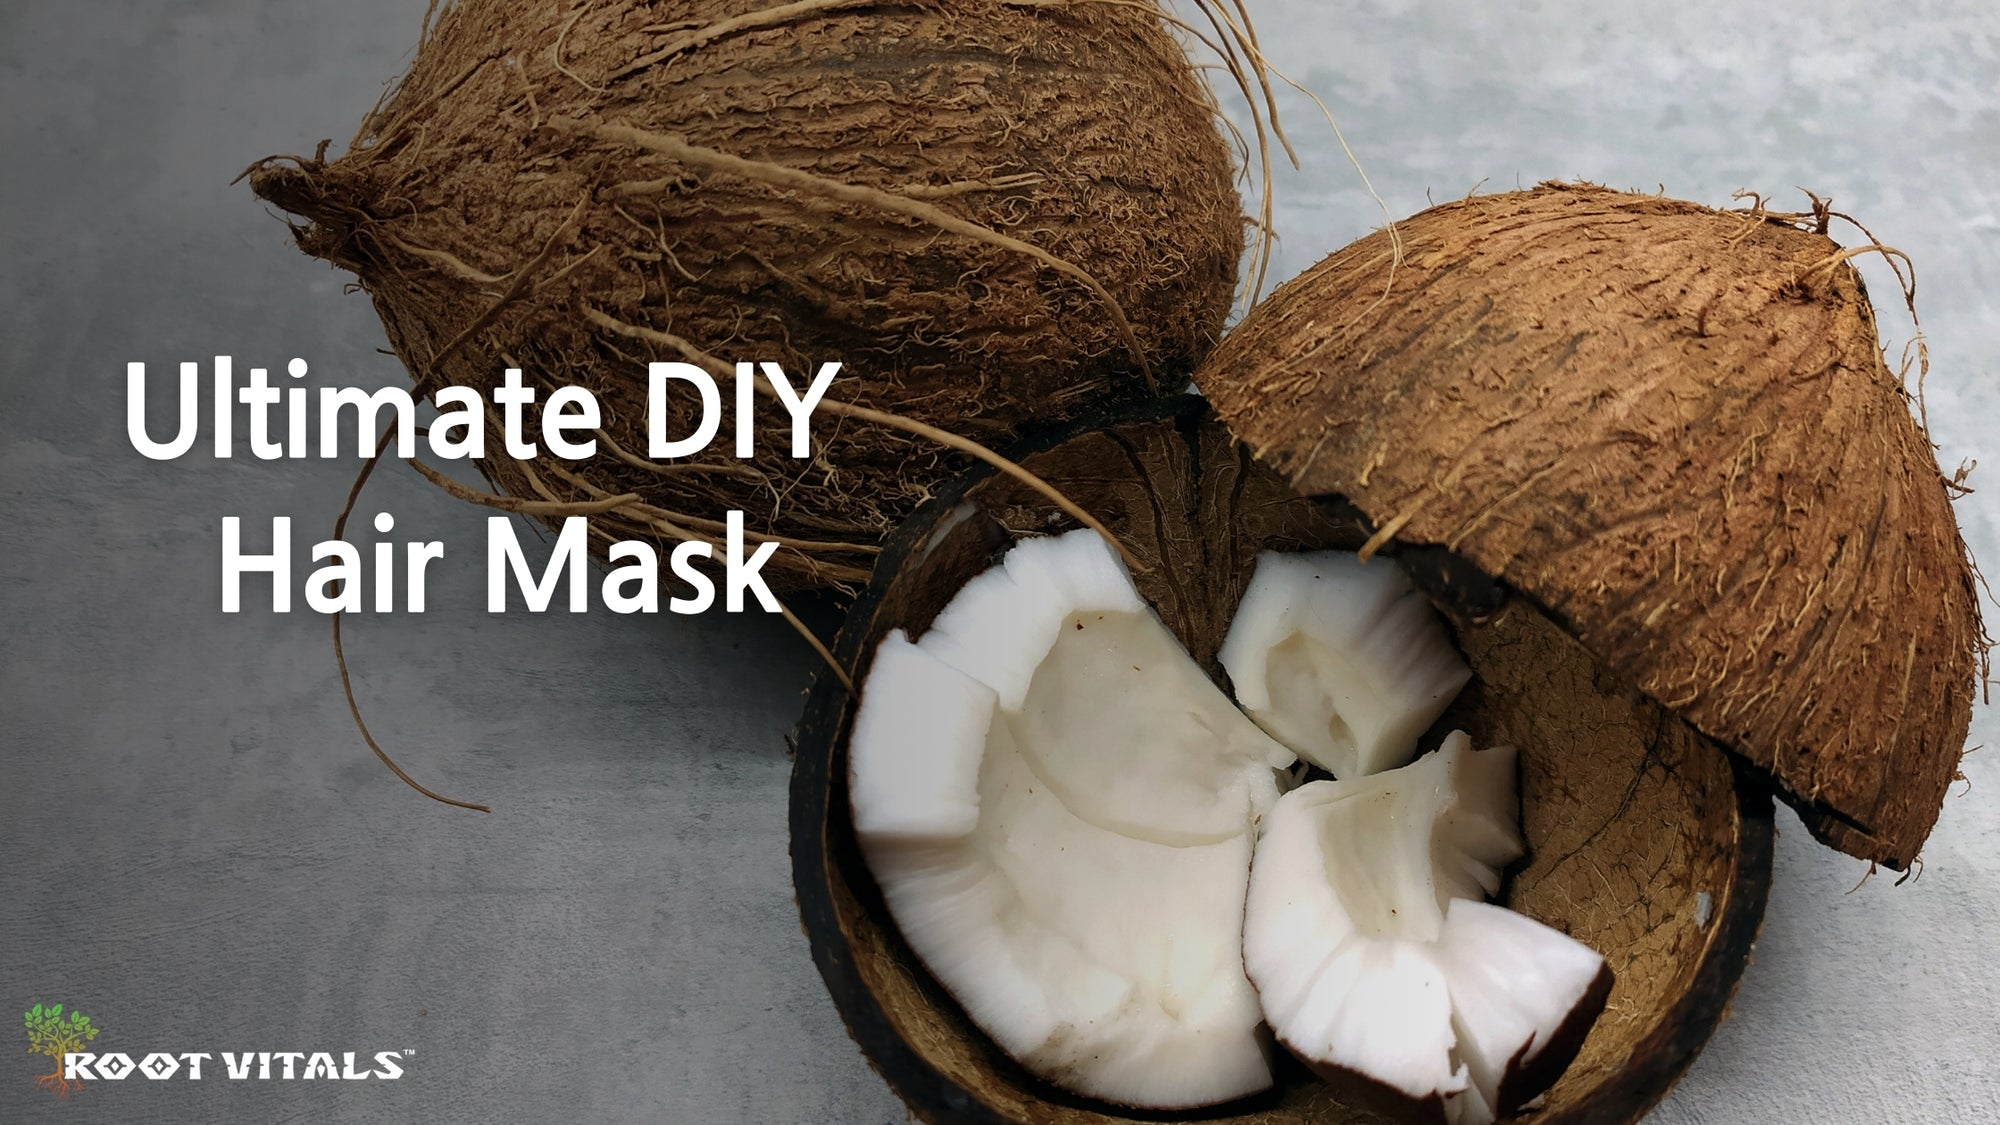 DIY Hair Mask using best natural products